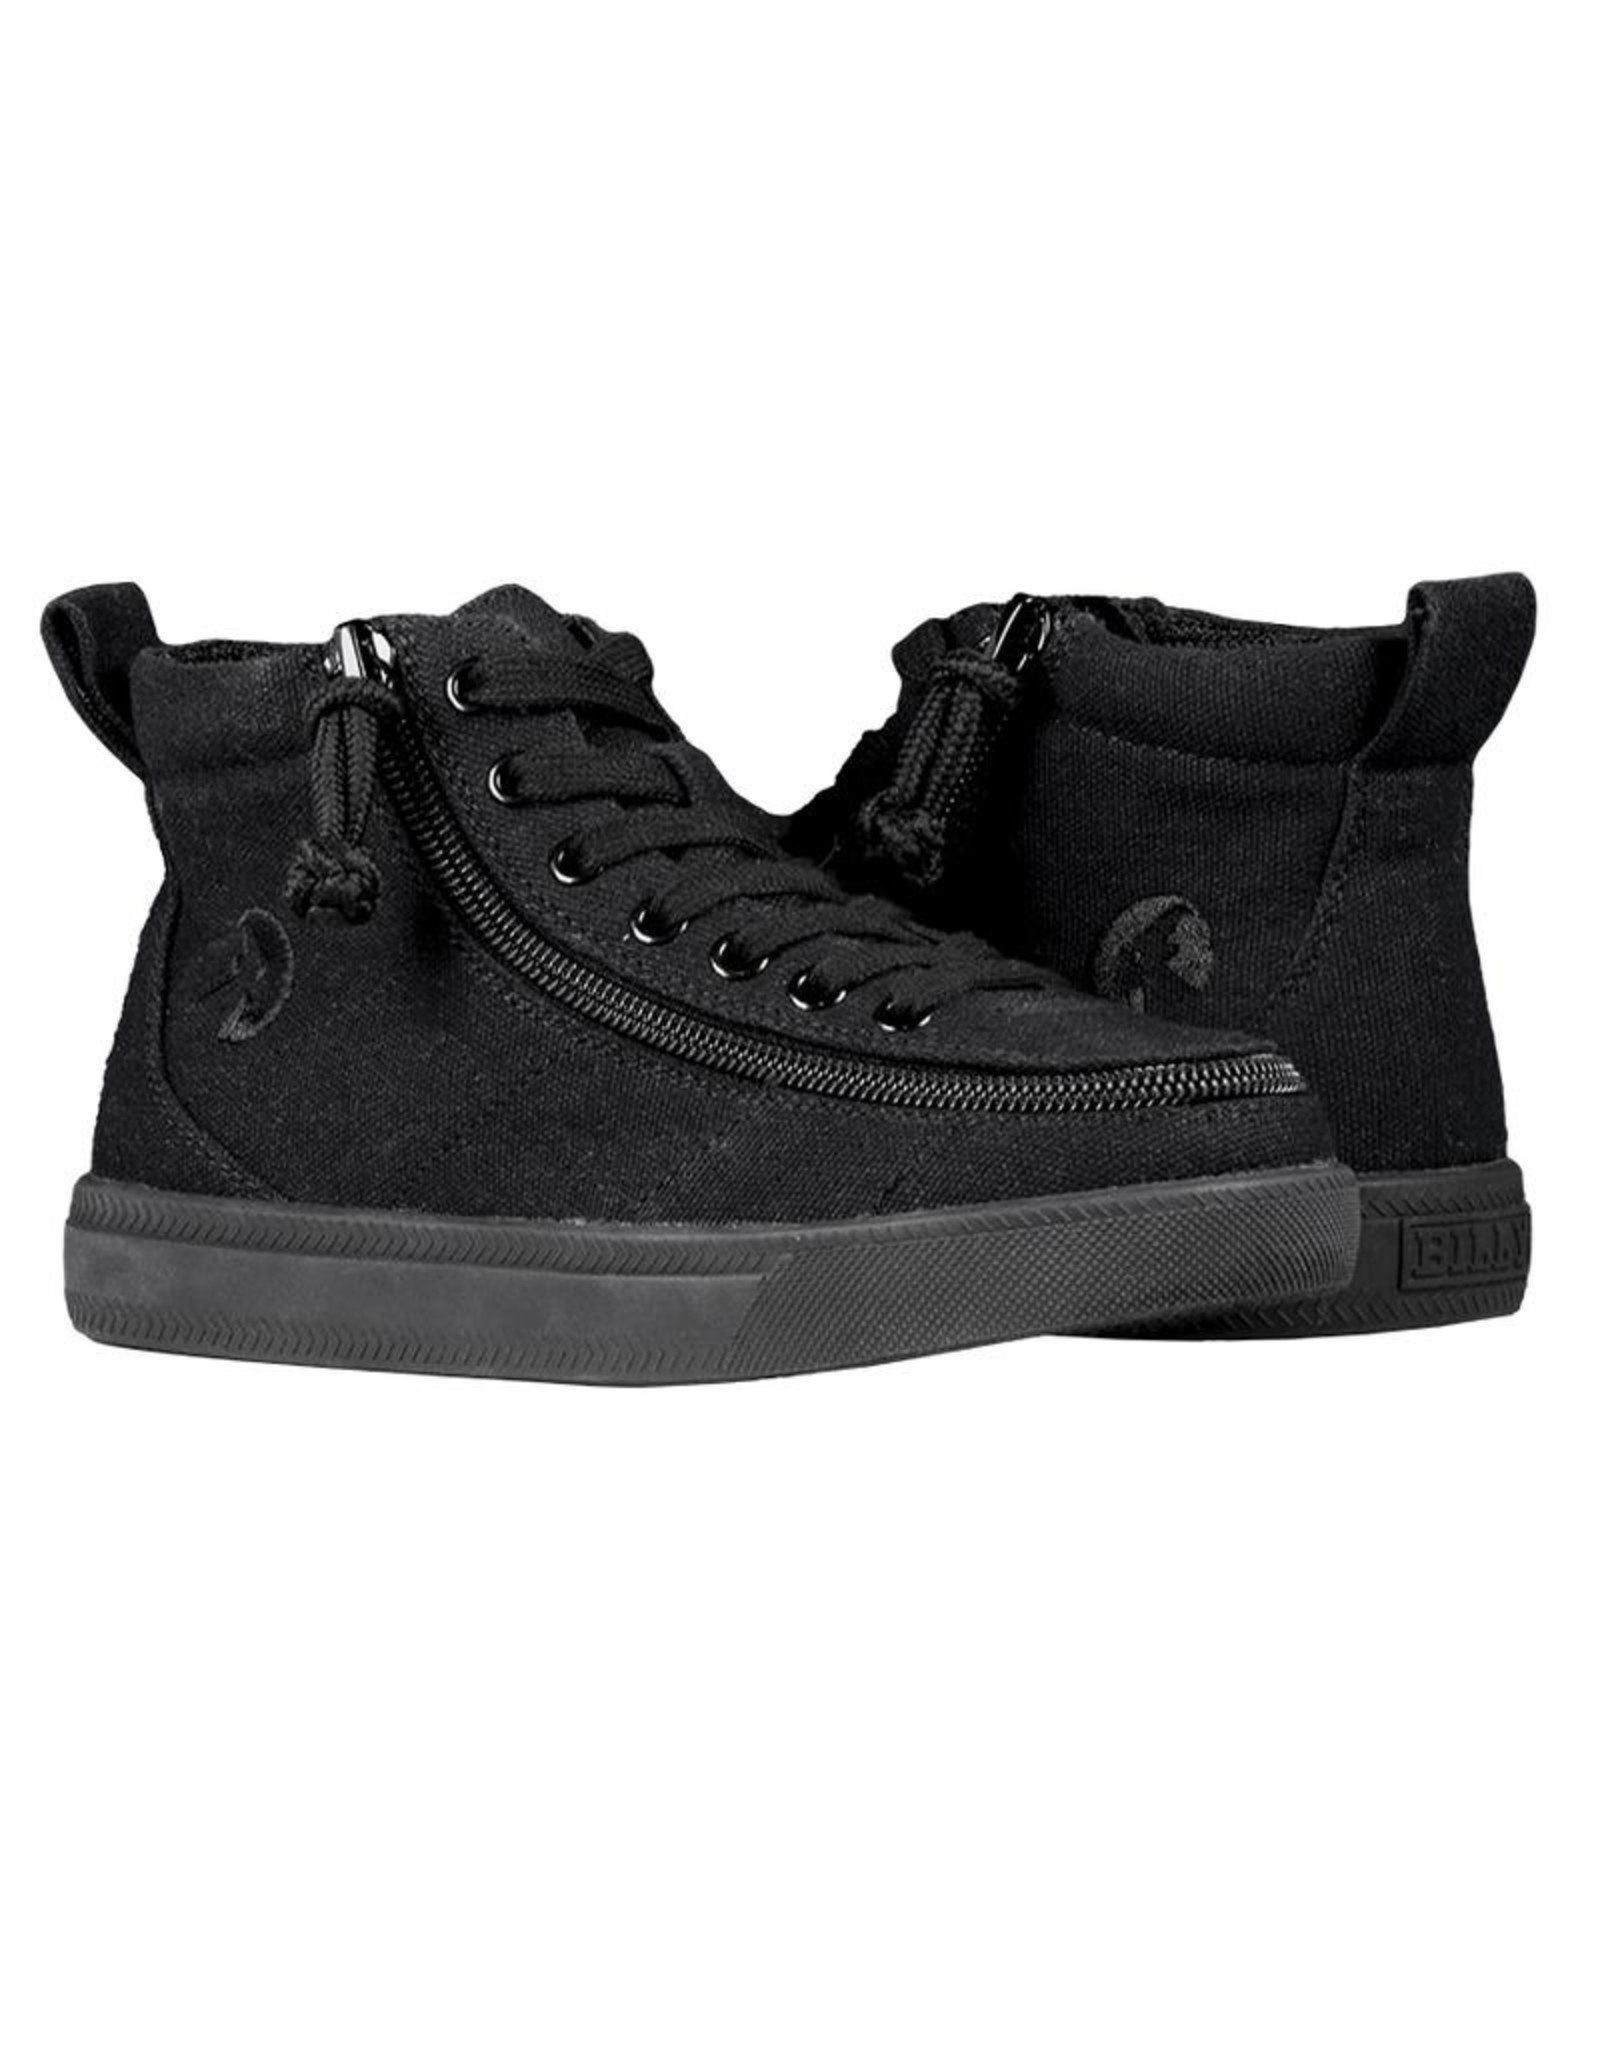 BILLY CLASSIC WDR HIGH TOP